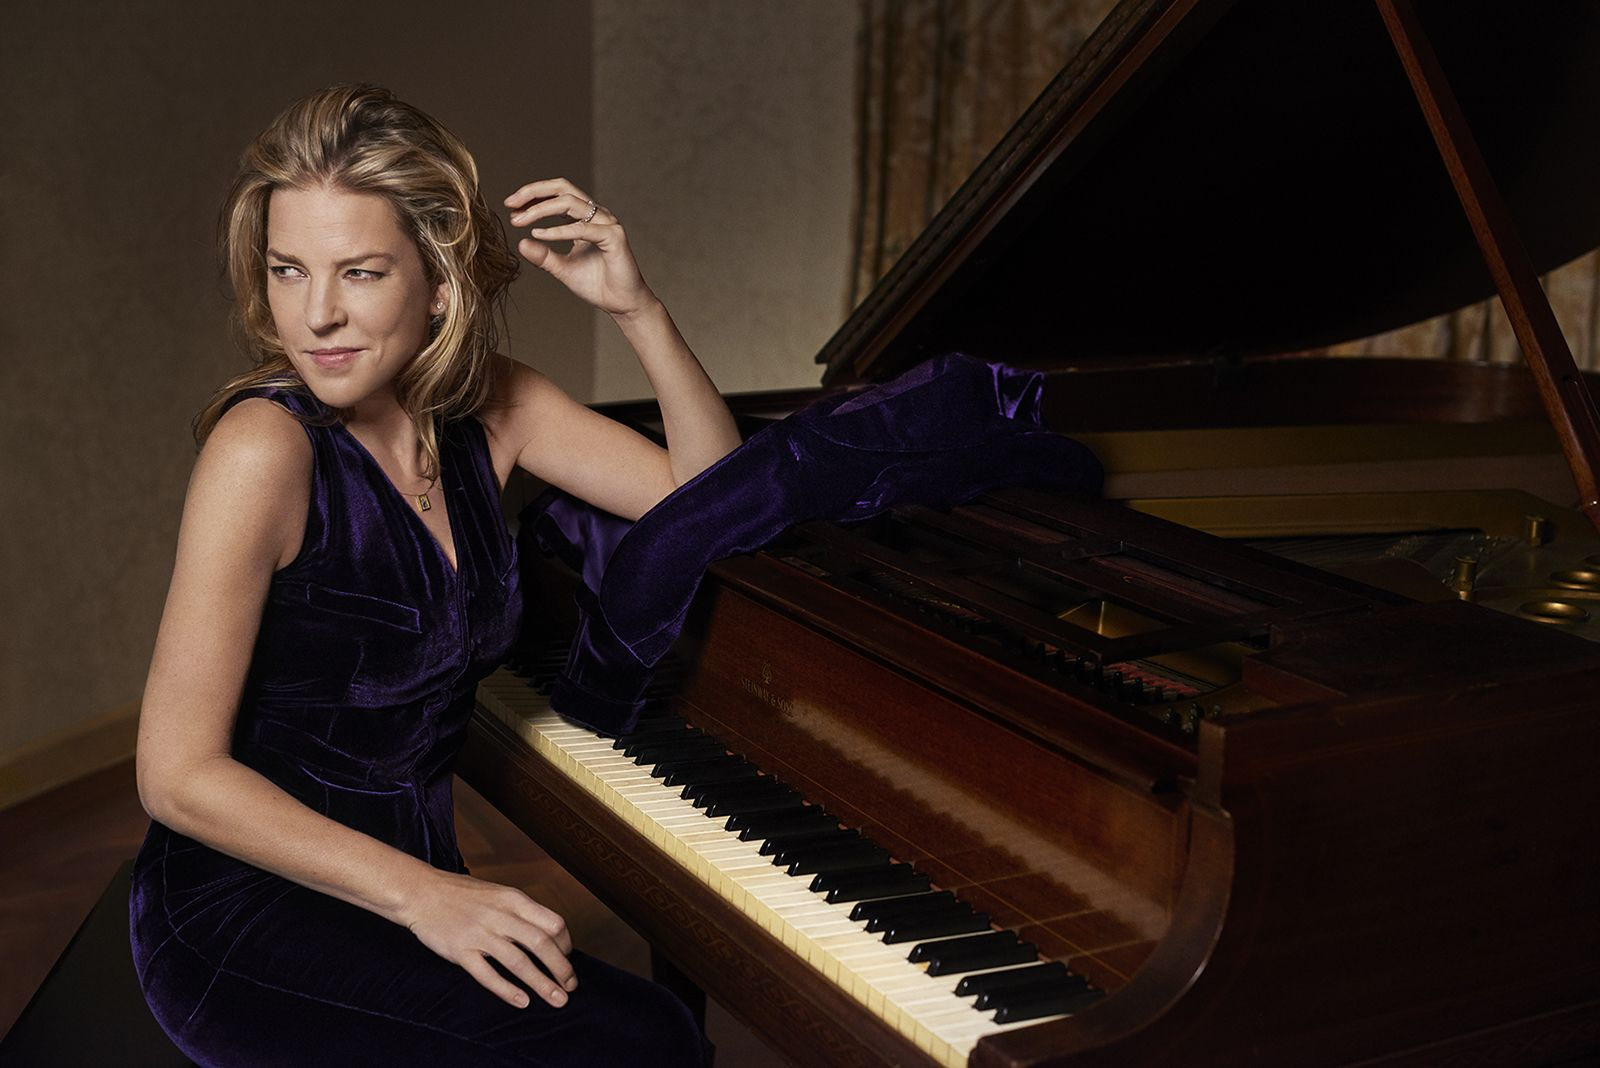 Diana Krall. photo: Mary McCartney.